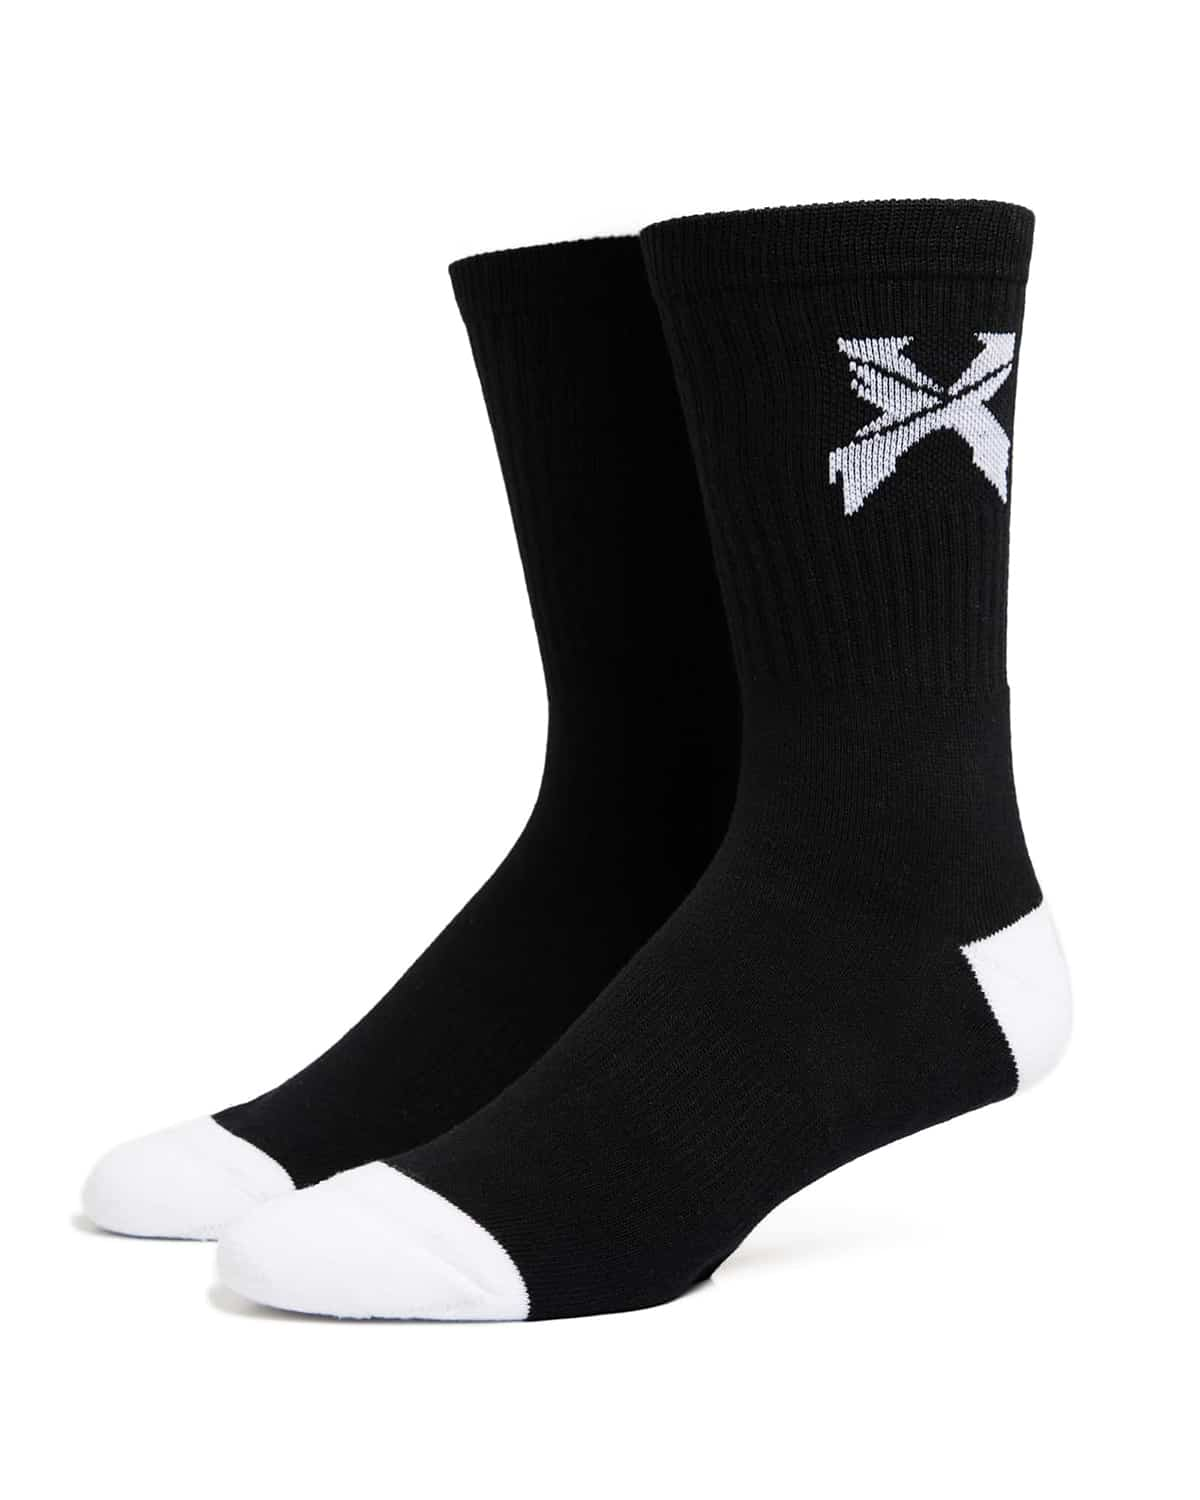 Excision 'Sliced' Logo Socks - Black/White